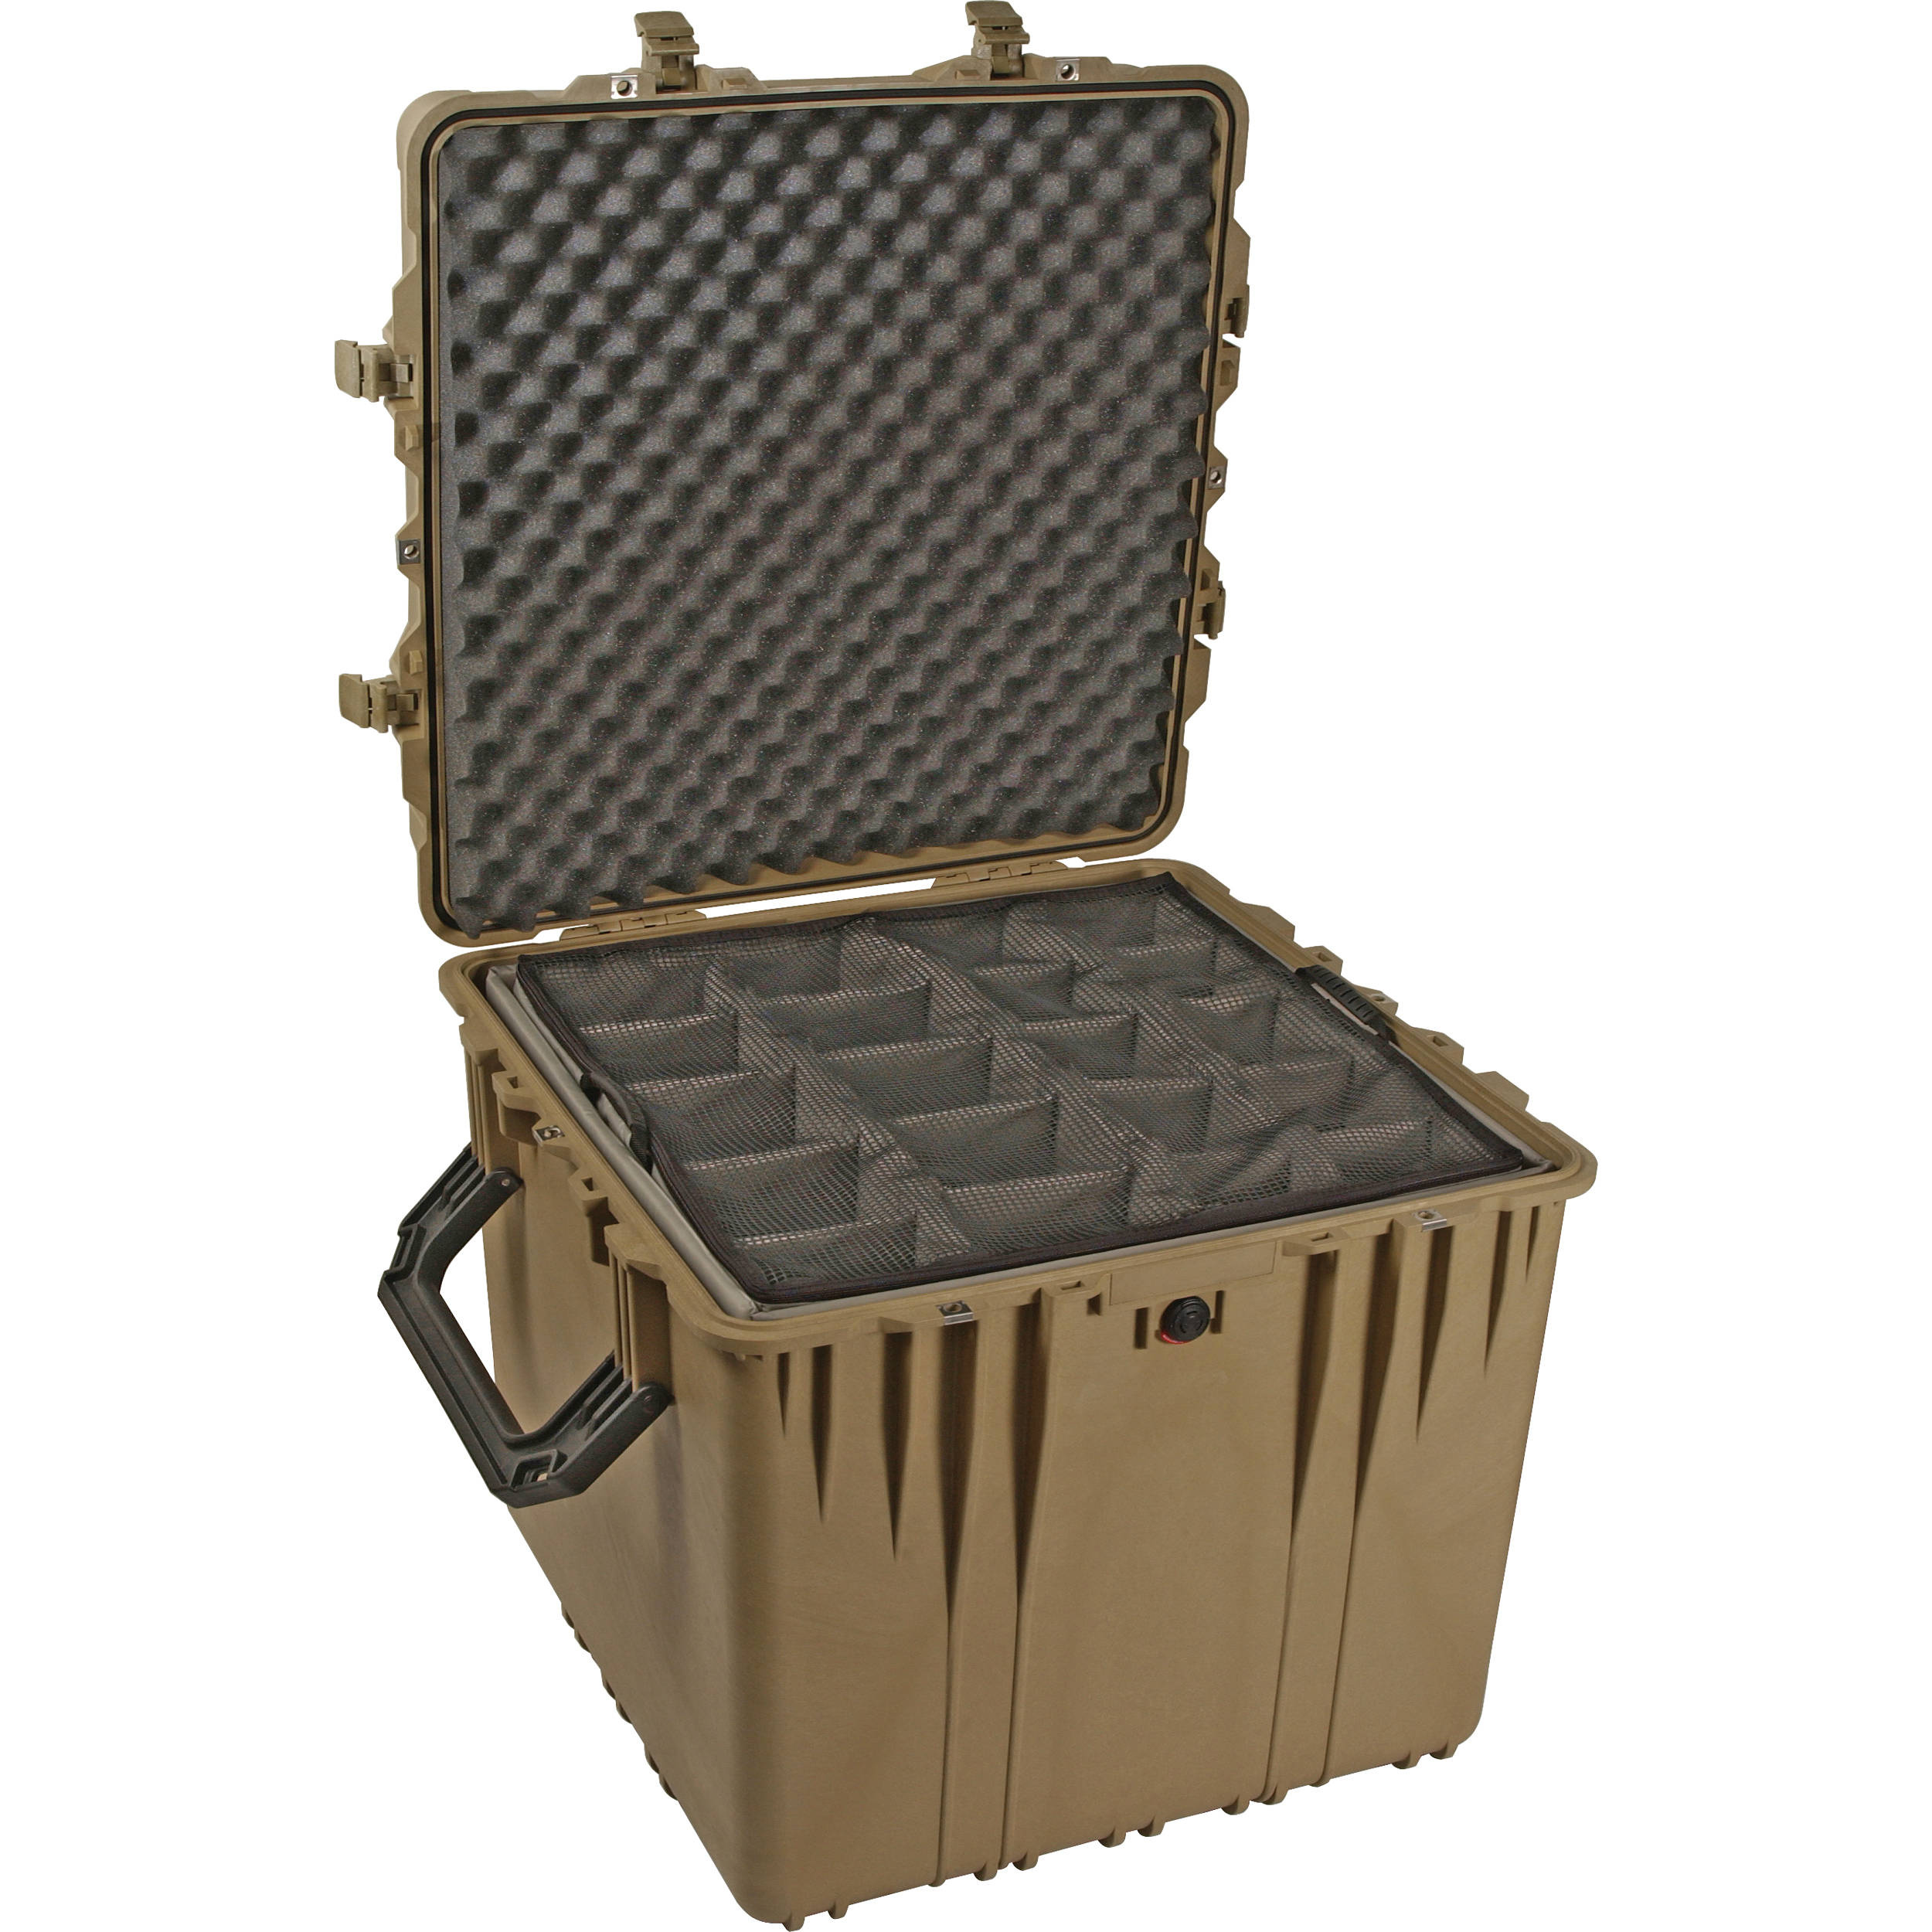 Pelican 0340 Cube Case with Padded Dividers (Desert Tan)